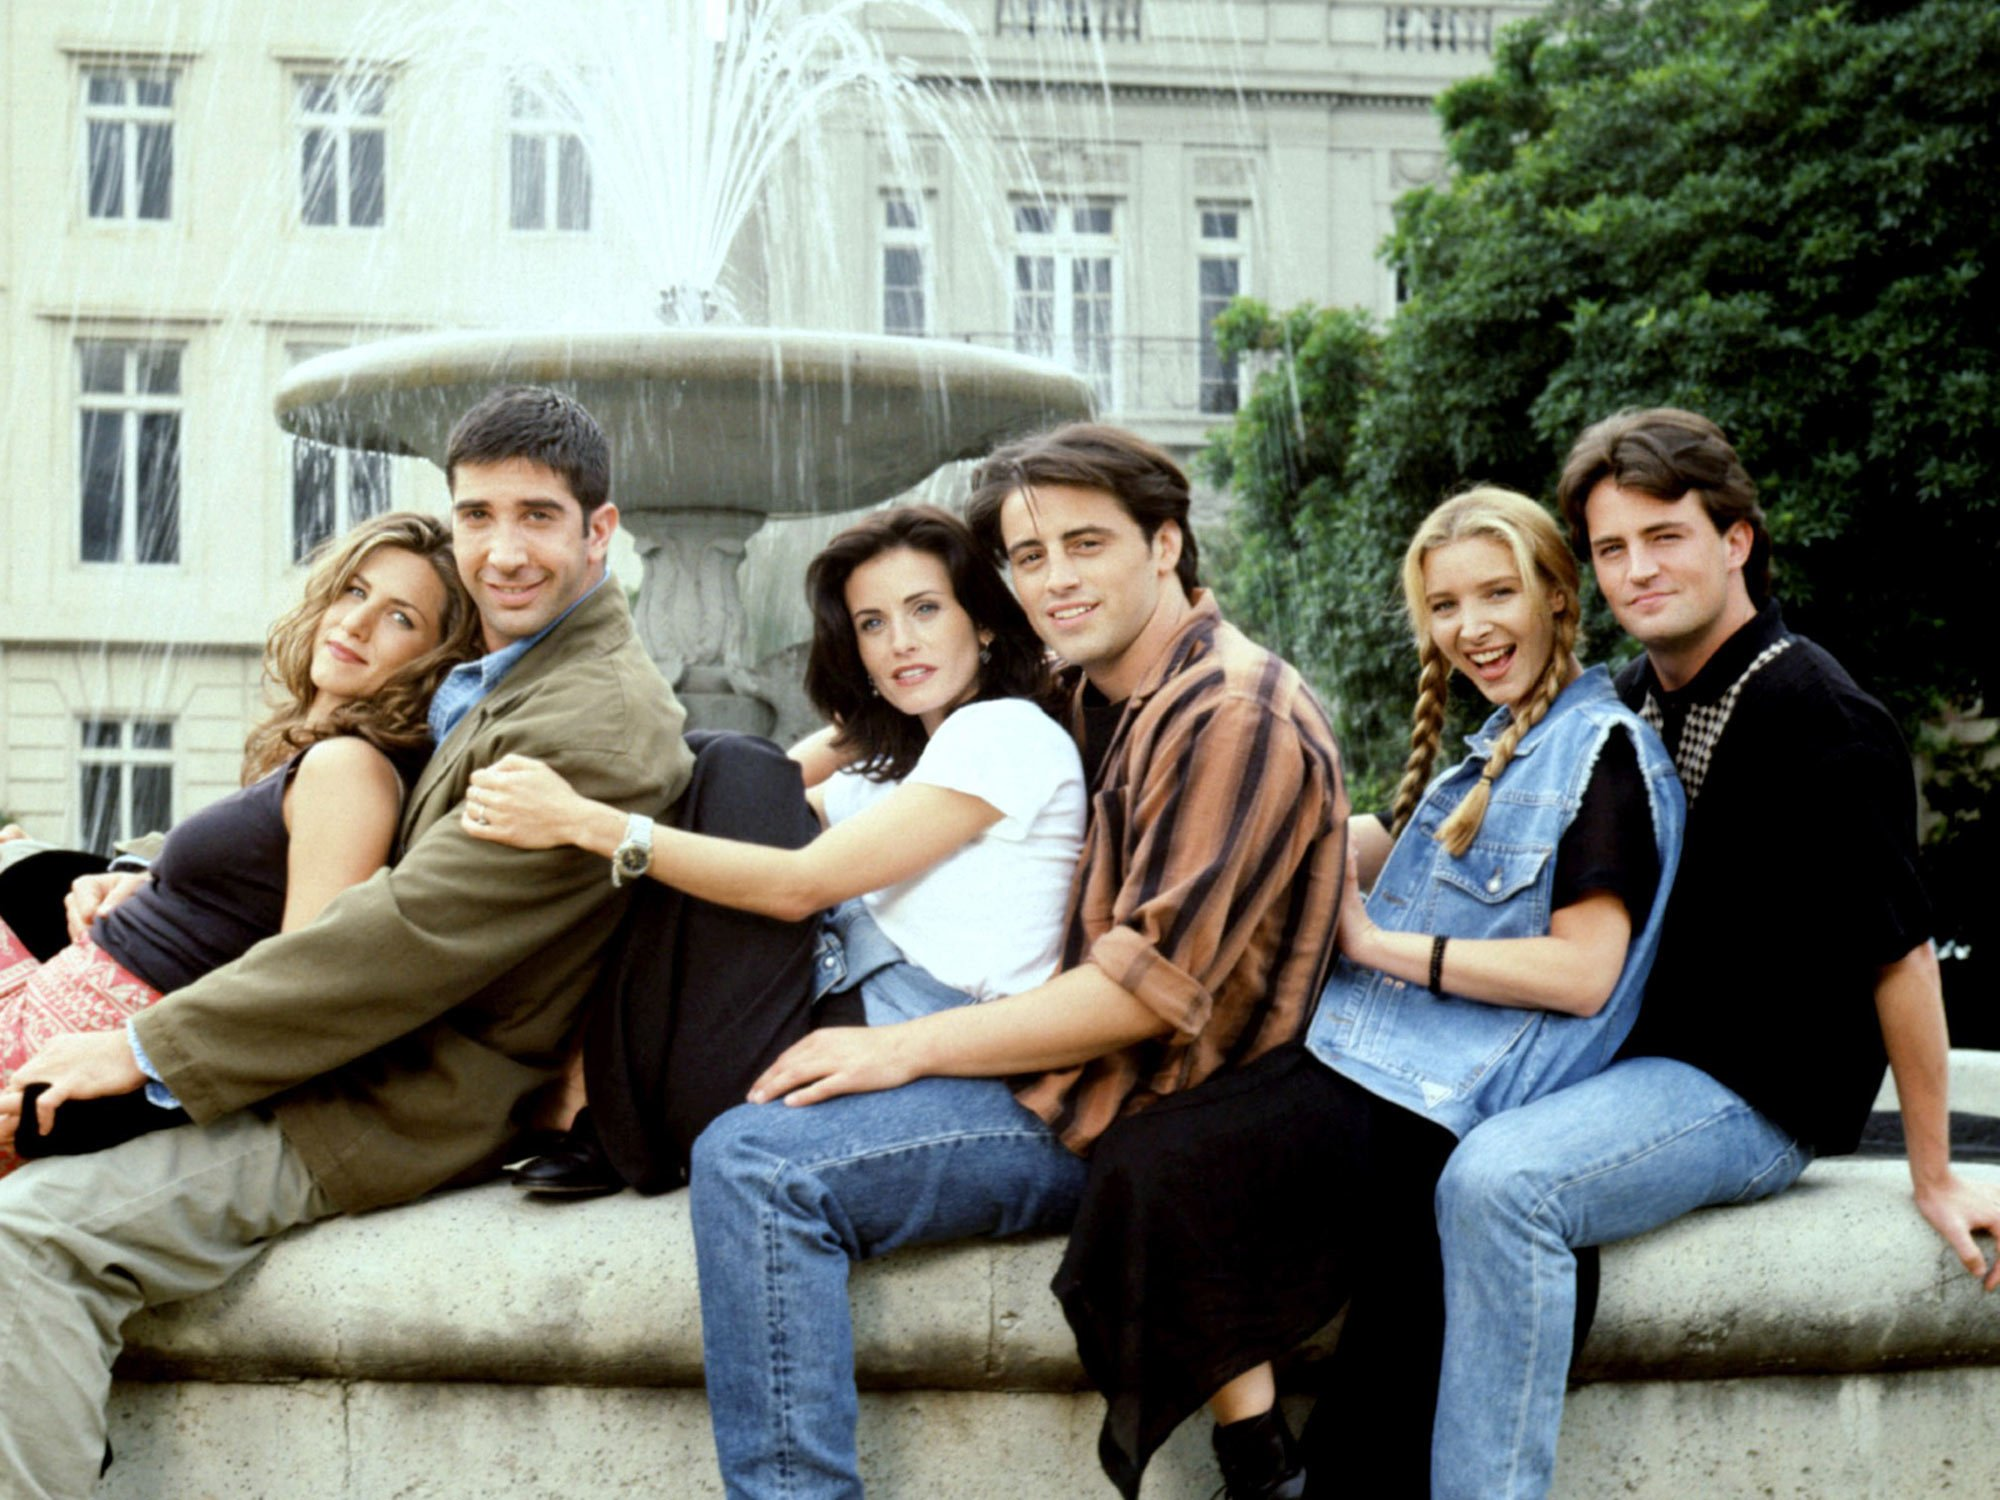 Netflix Reportedly Paid $100 Million to Keep Friends for Another Year After Fan Uproar